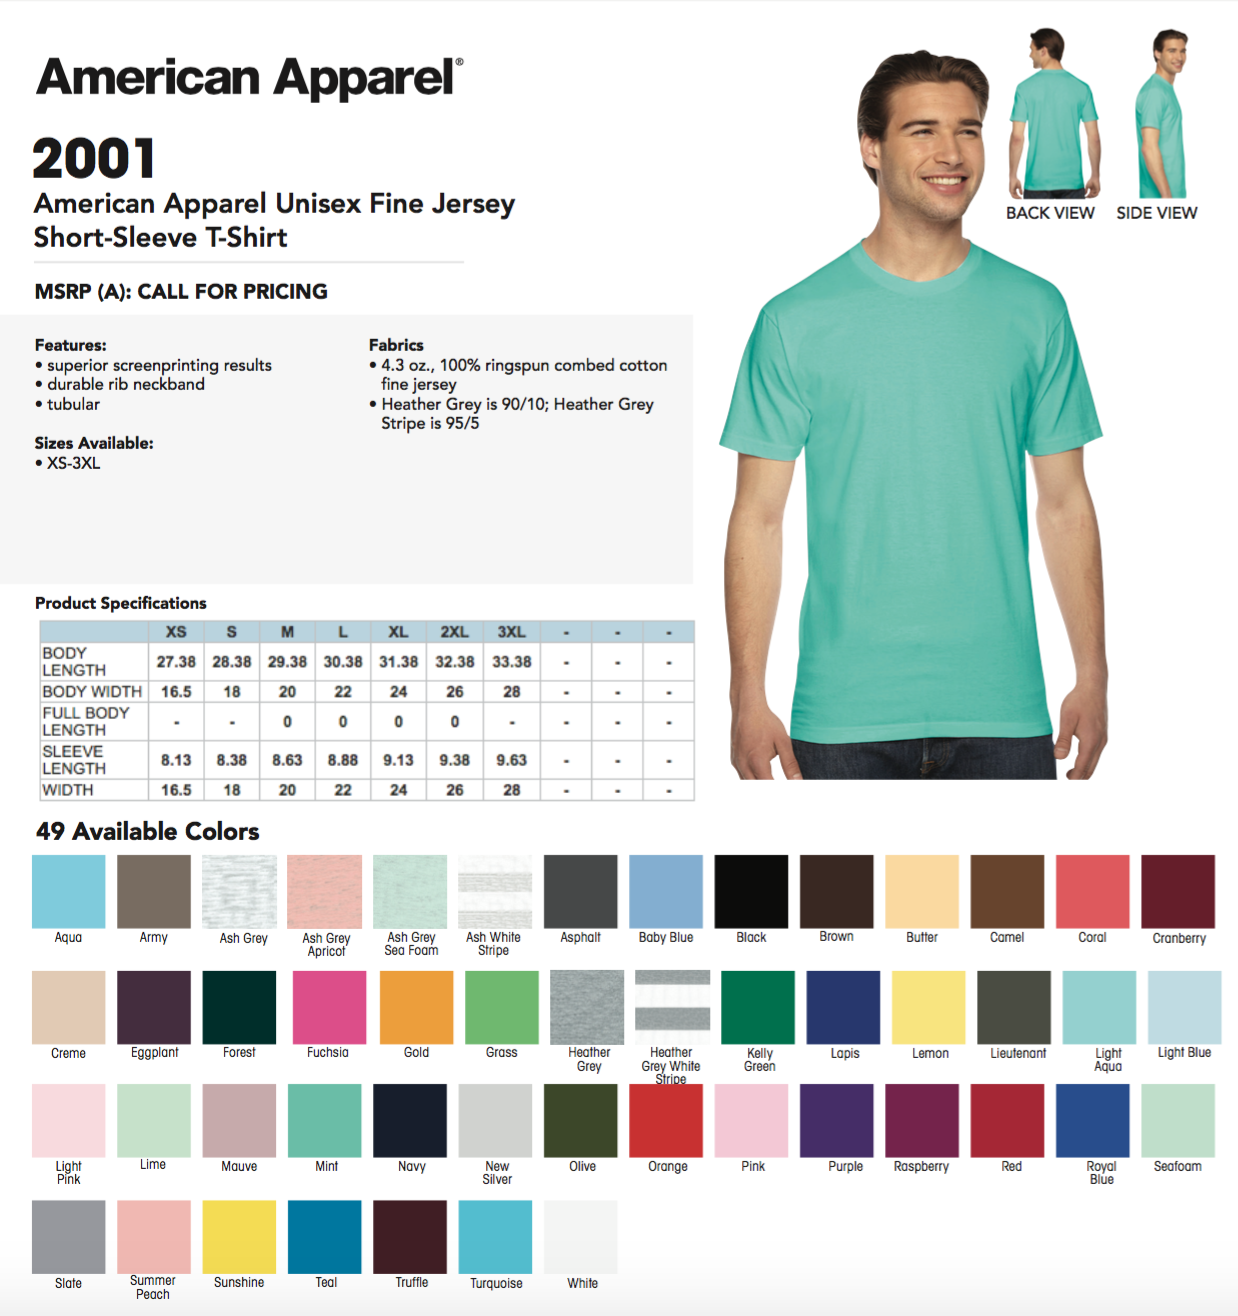 50 Blank American Apparel 2001 Fine Jersey T-Shirt Lot ok to mix XS-XL & Farbes